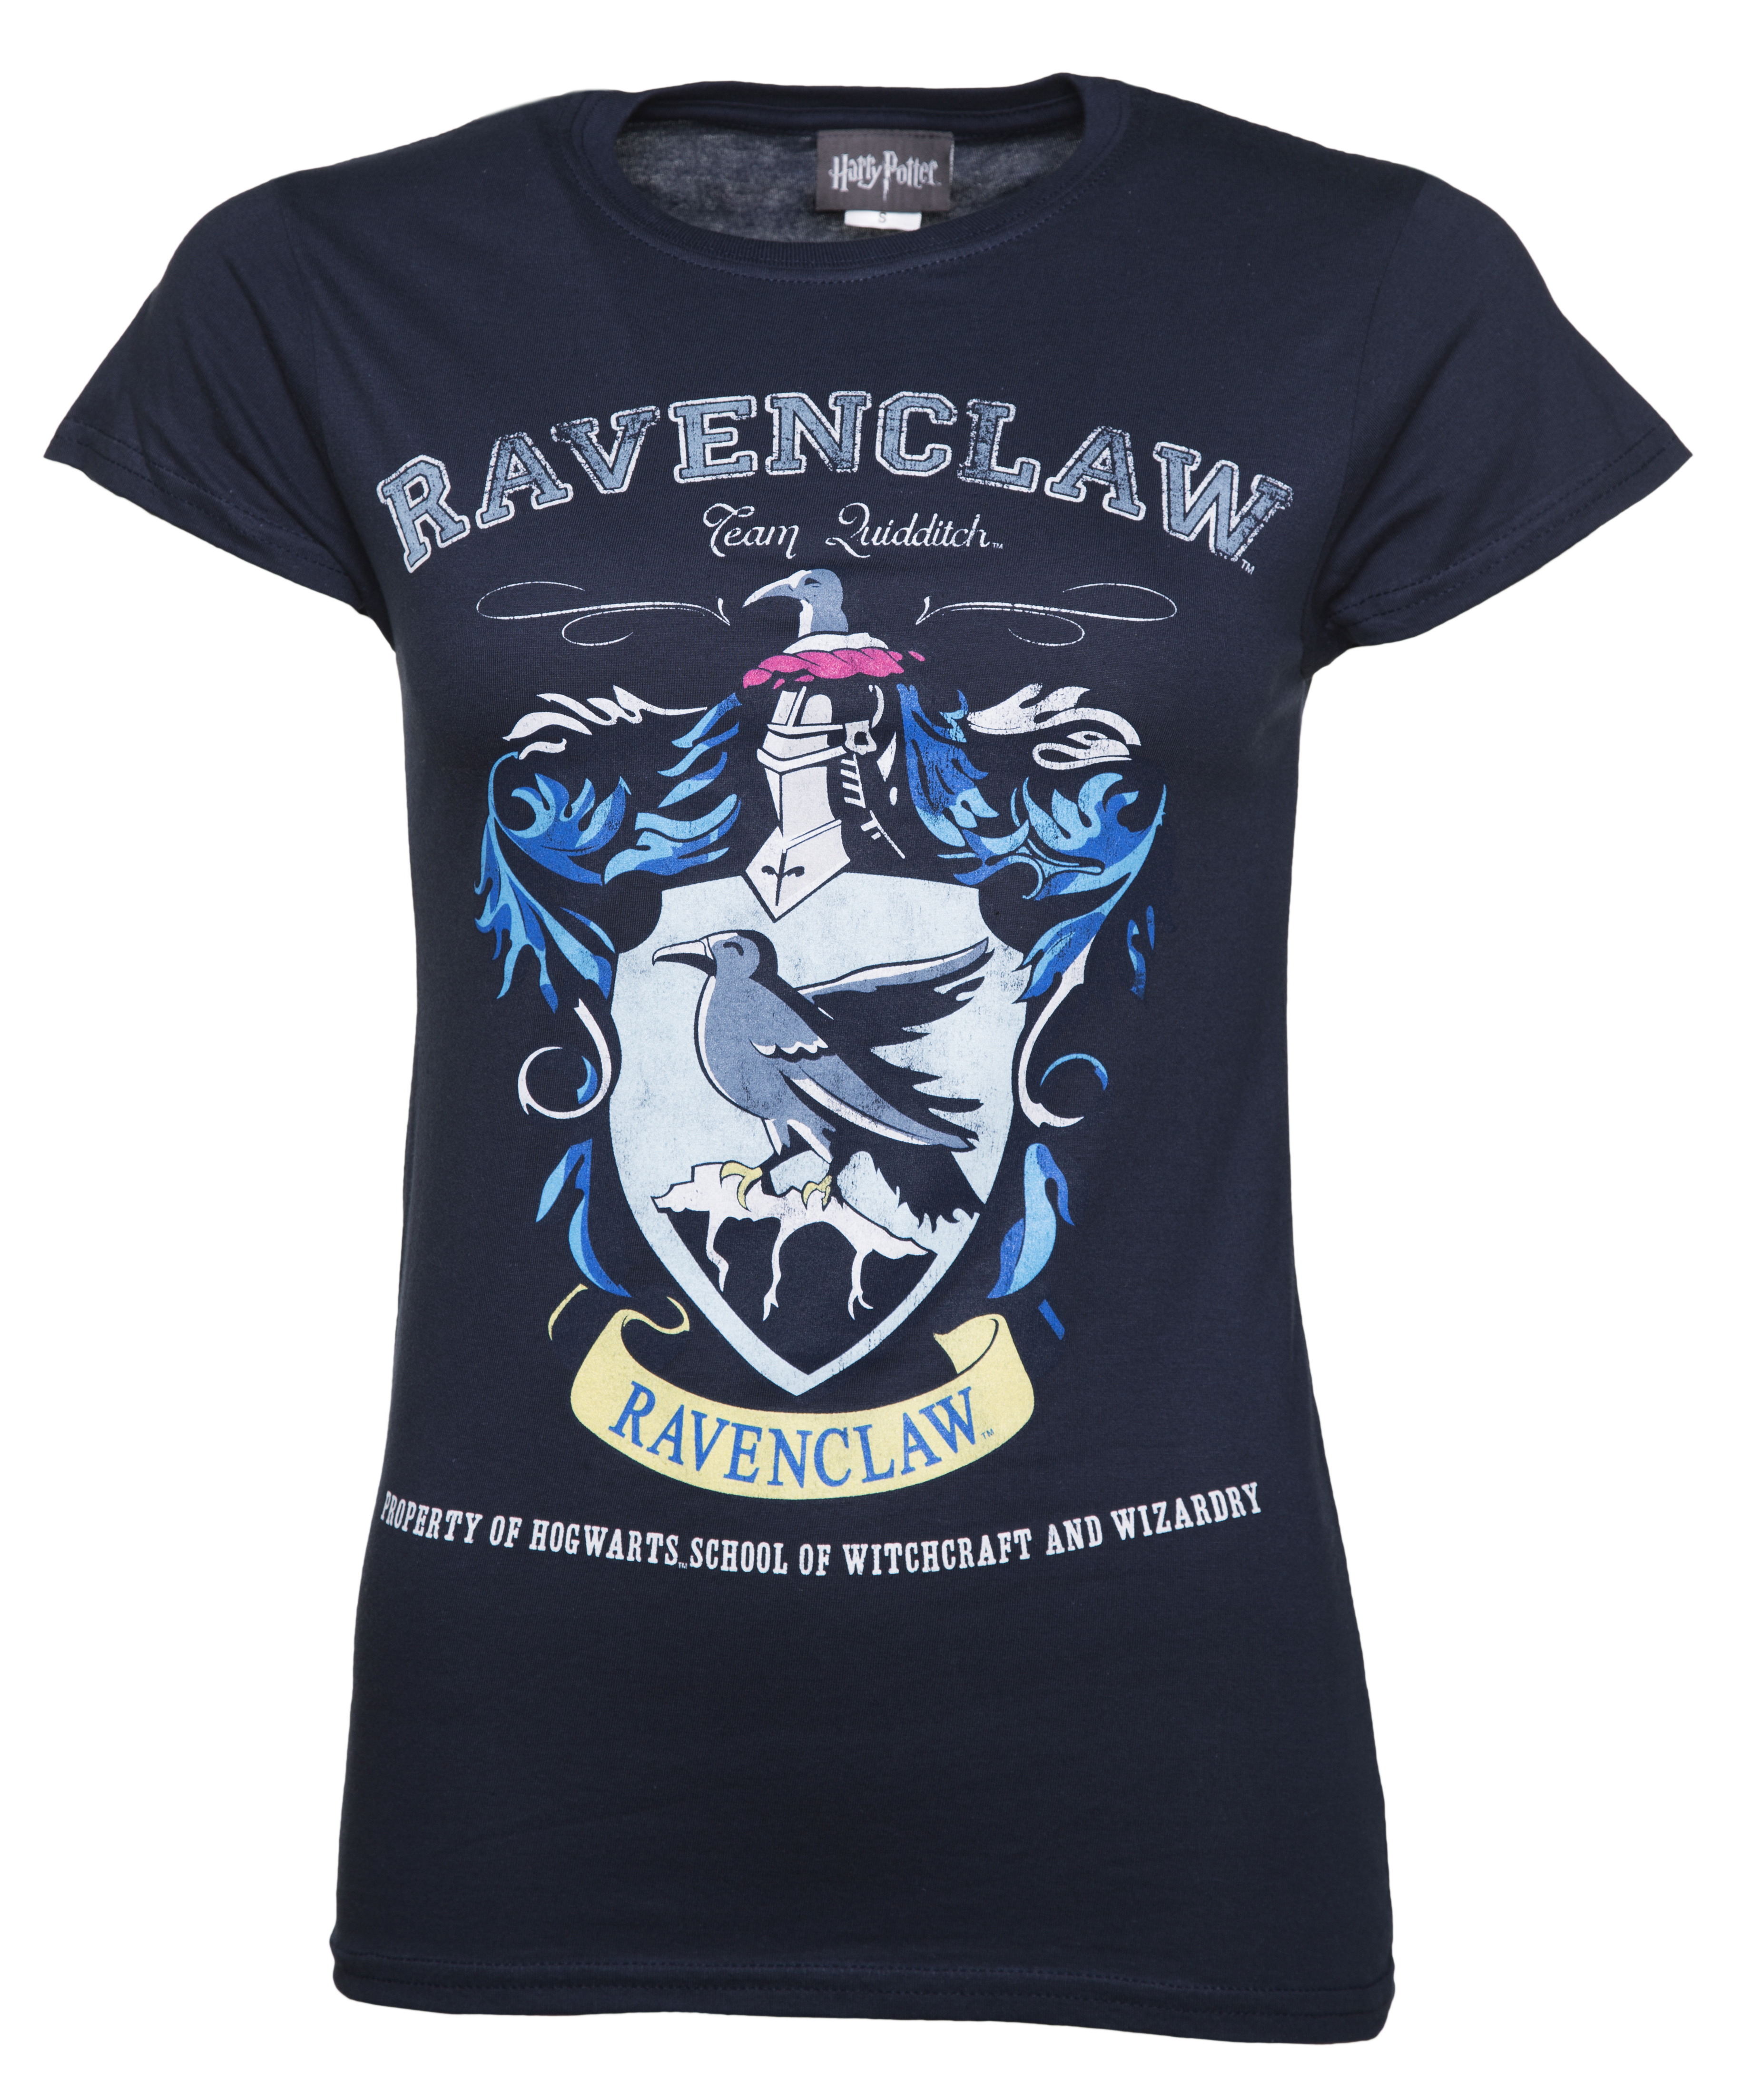 ec4d9c555a8 Ladies Navy Harry Potter Ravenclaw Team Quidditch T-Shirt from  TruffleShuffle - Intentionally distressed screen print for that authentic  vintage appeal